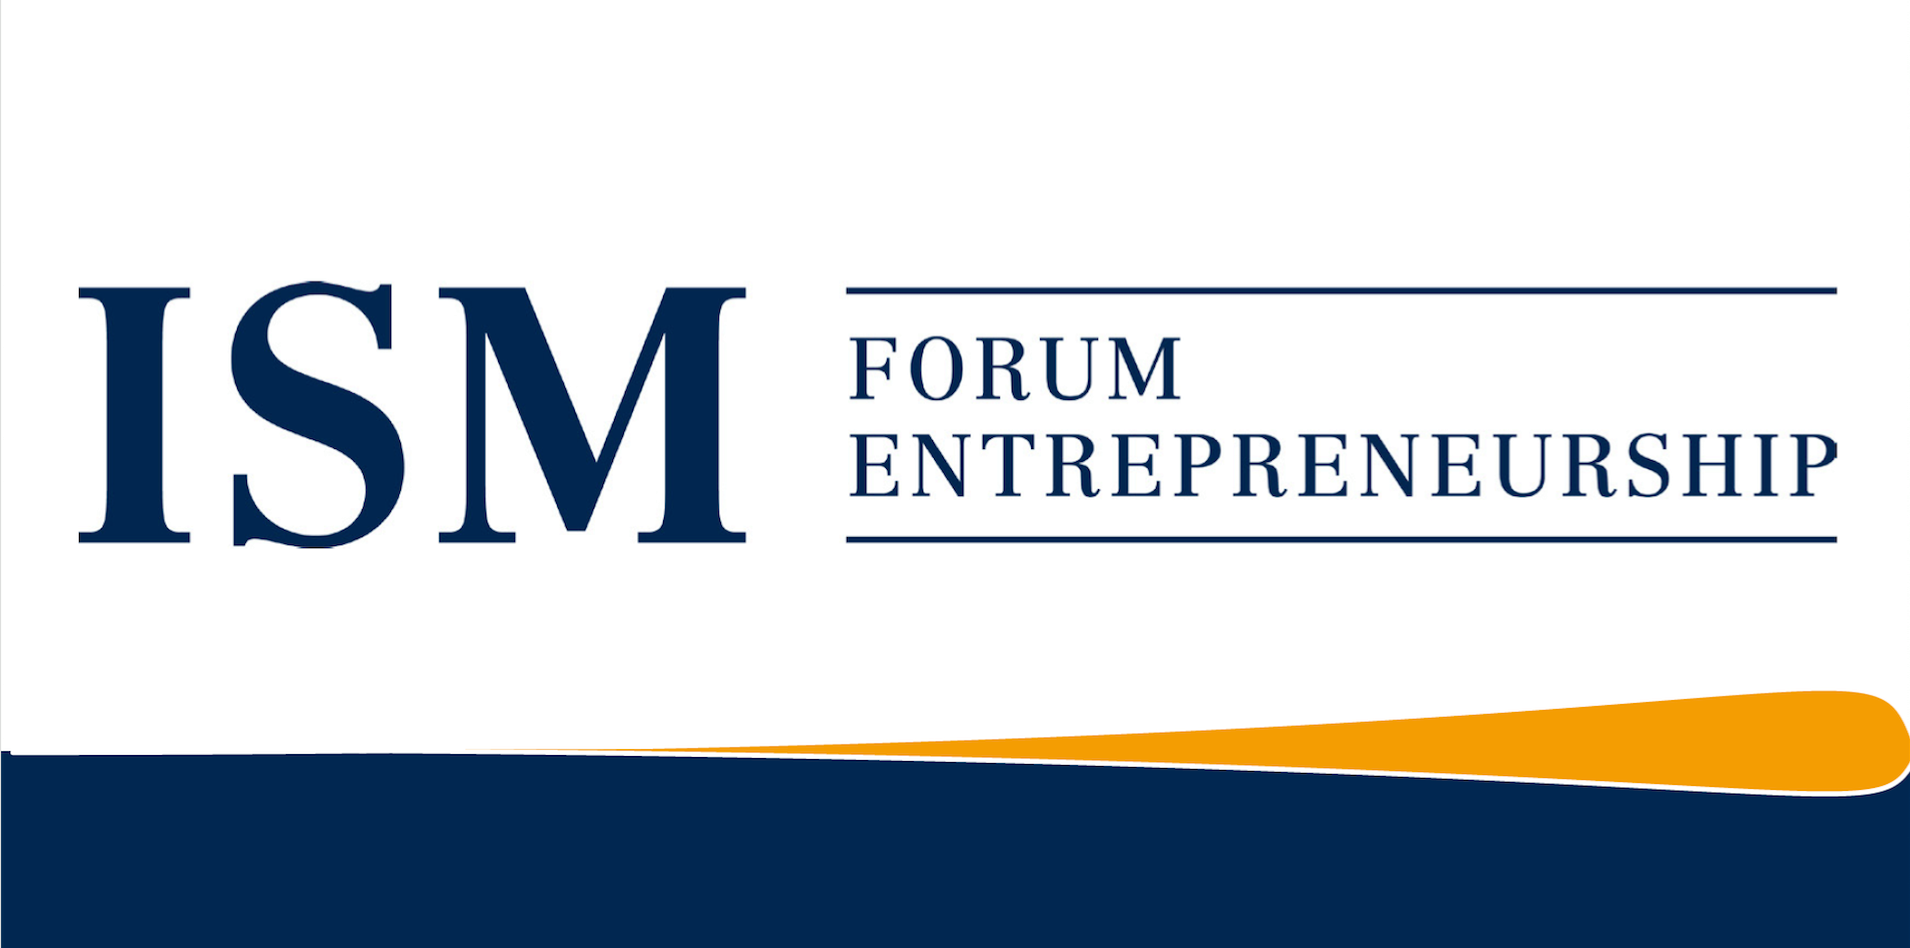 ISM Forum Entrepreneurship